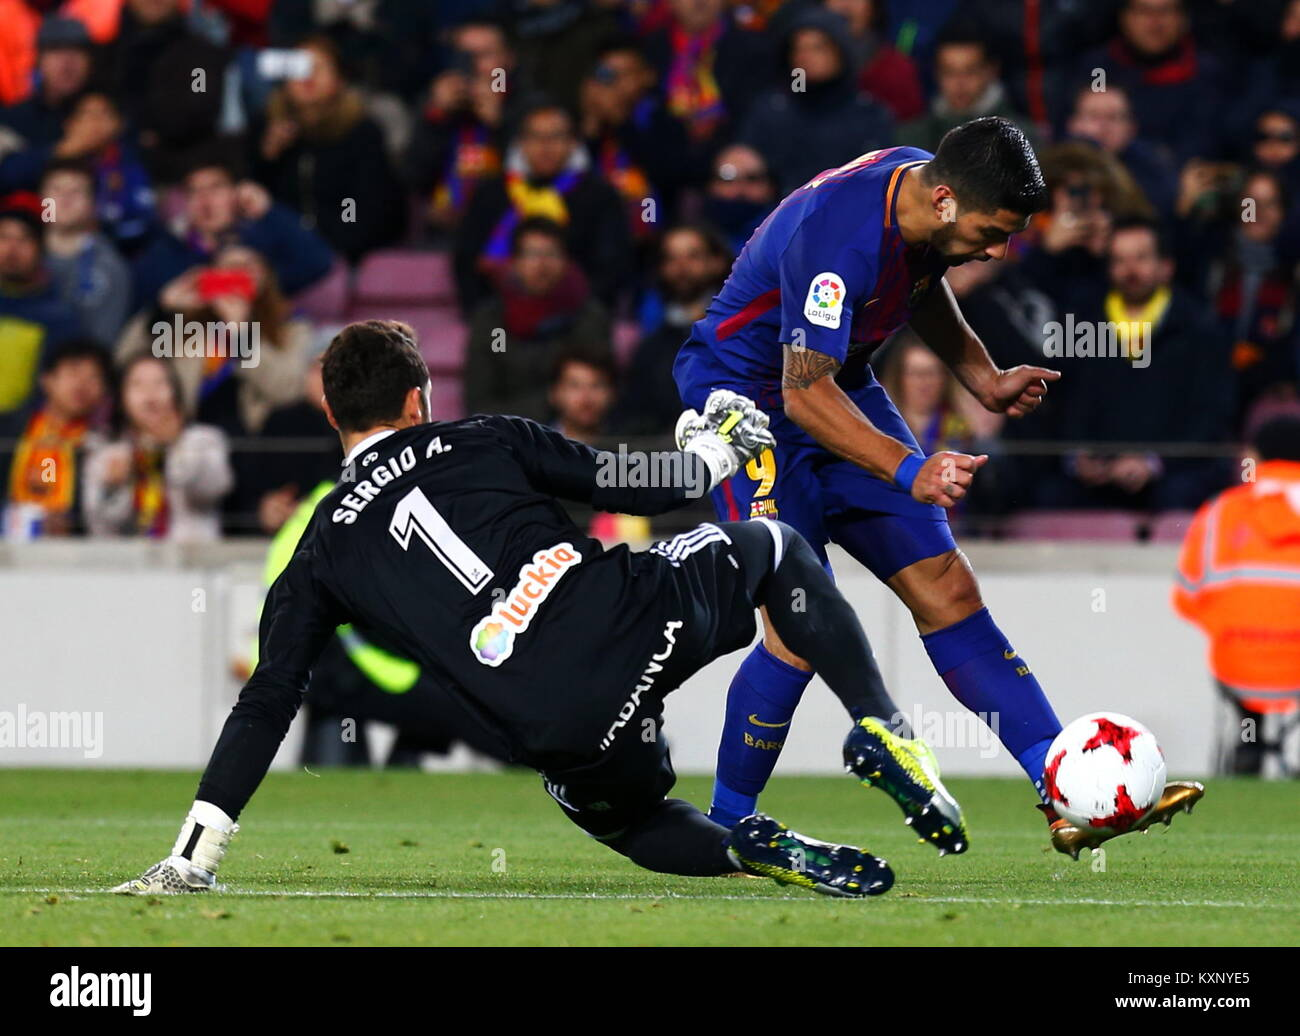 Barcelona, Spain. 11th Jan, 2018. Luis Suarez,11th January 2018, Camp Nou, Barcelona, Spain; Copa del Rey football, - Stock Image